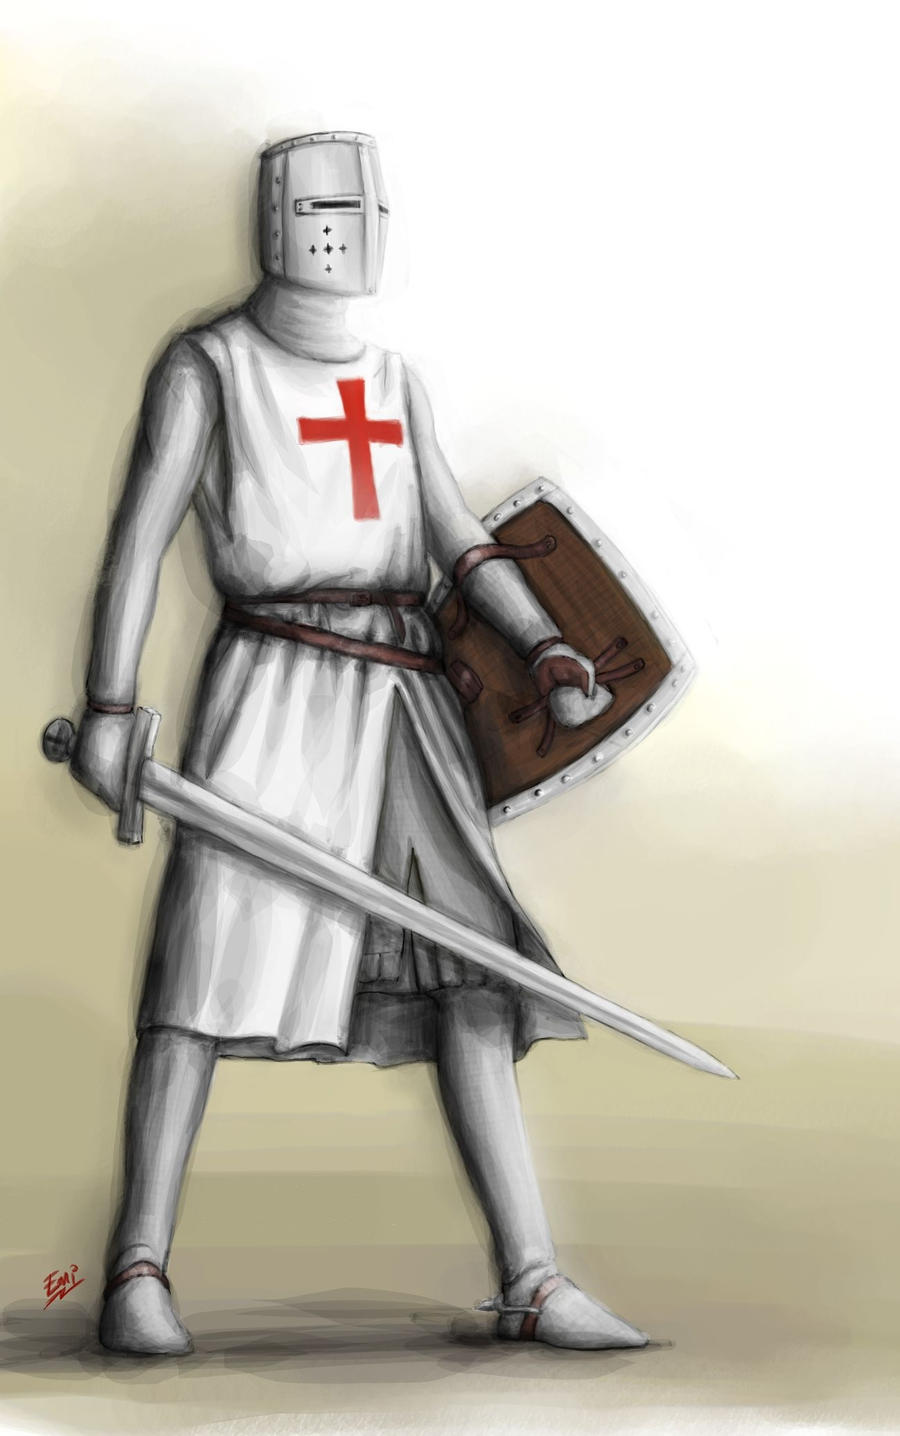 Templar Knight by touchedbyred on DeviantArt